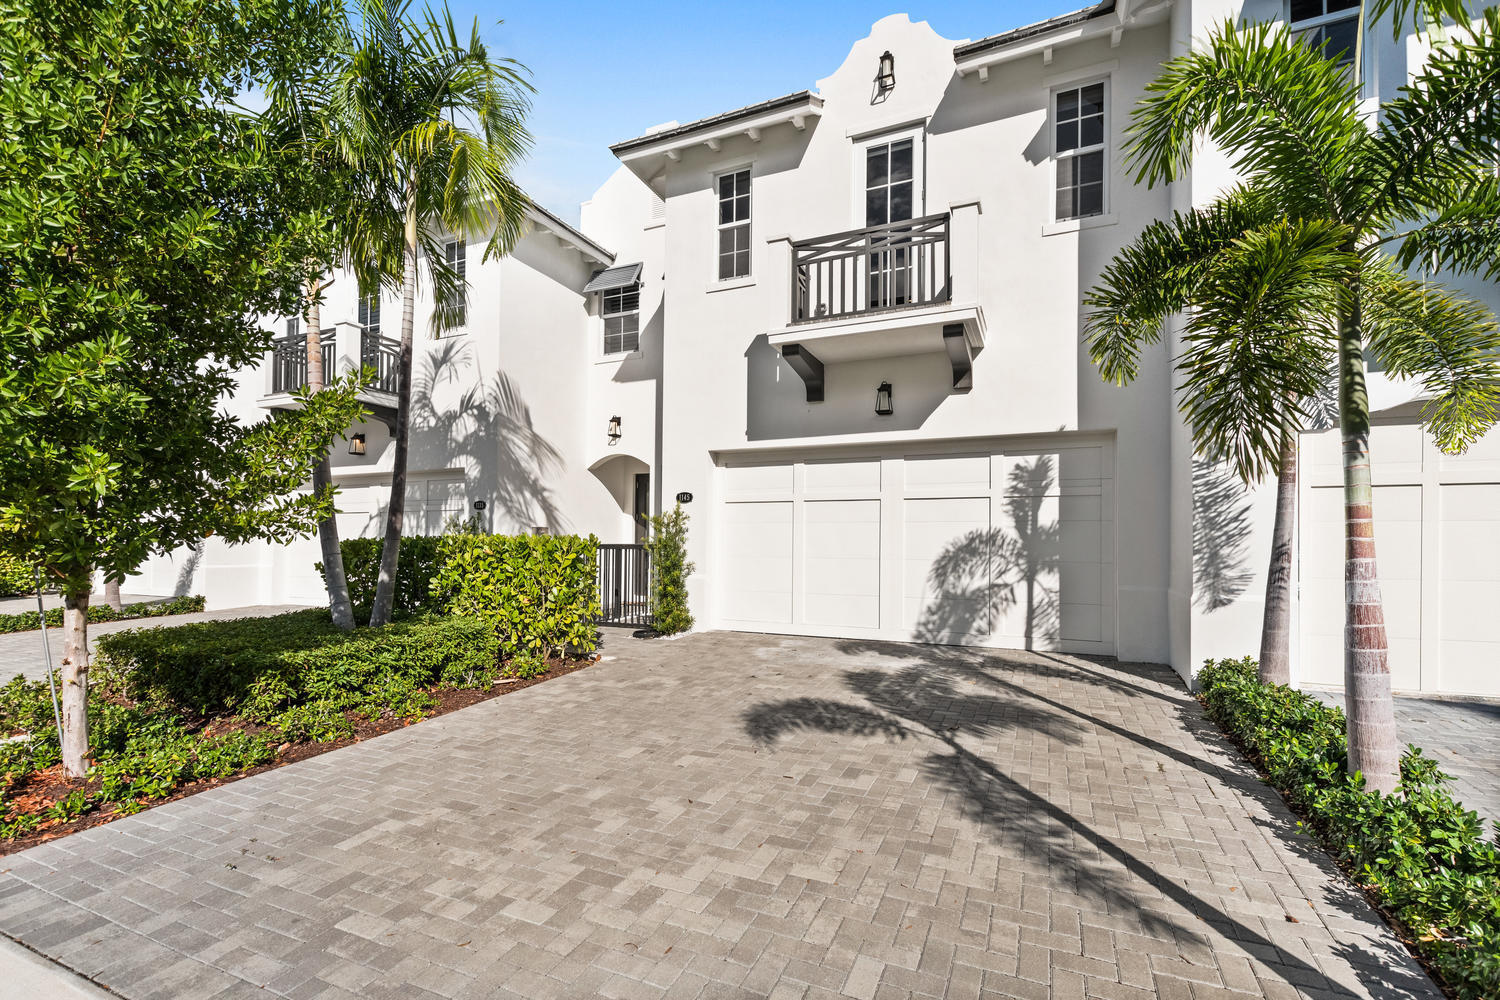 Home for sale in St George Delray Beach Florida